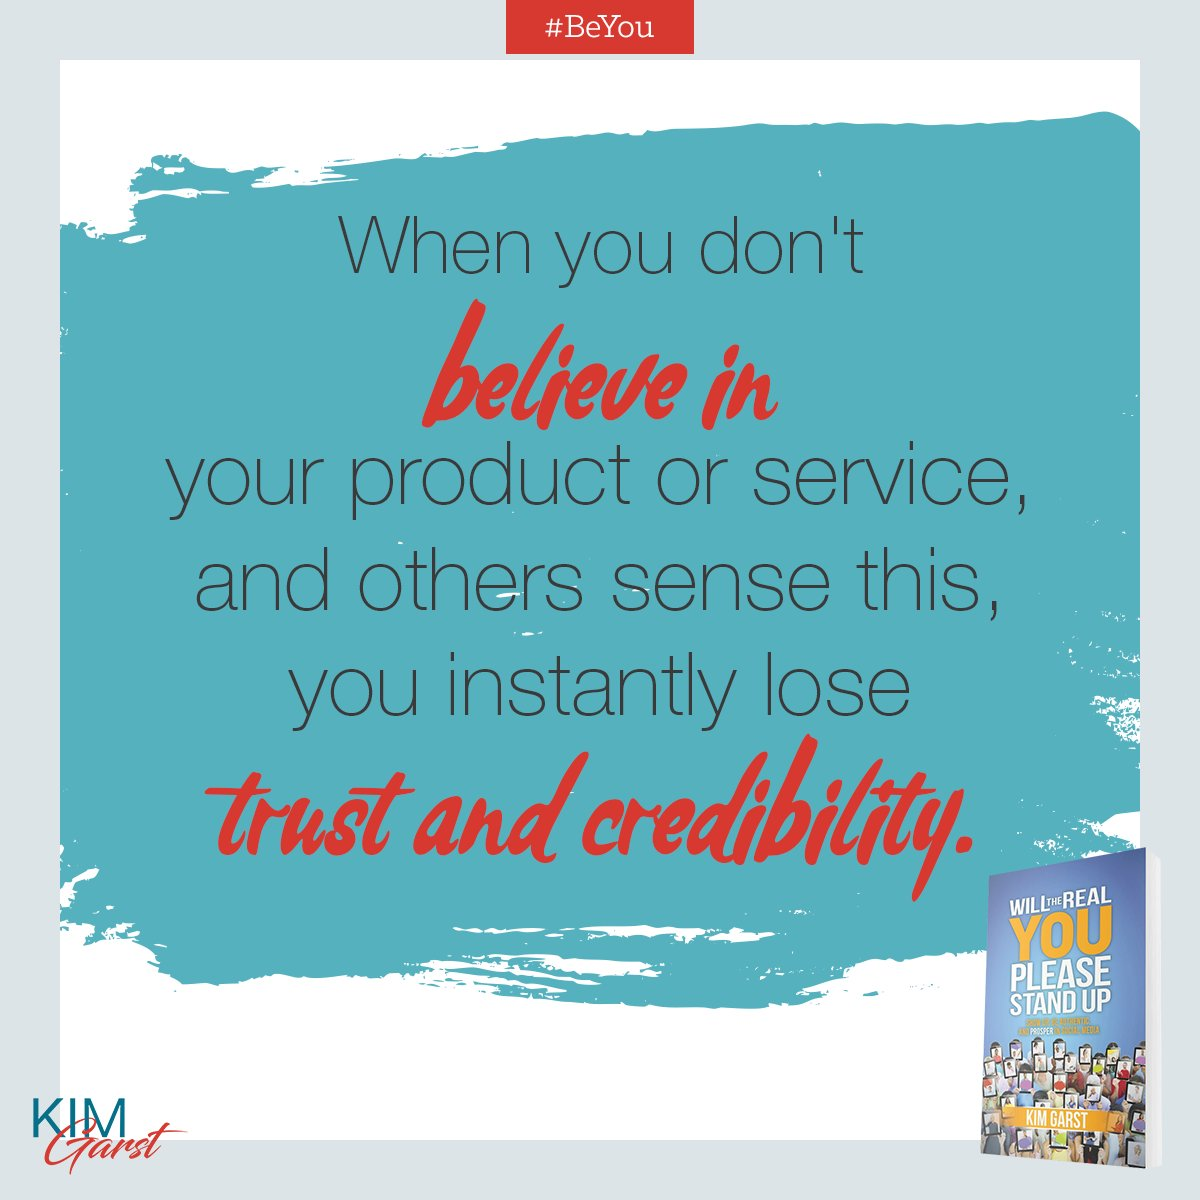 You lose trust & credibility if you don't believe in your product/service. #BeYou